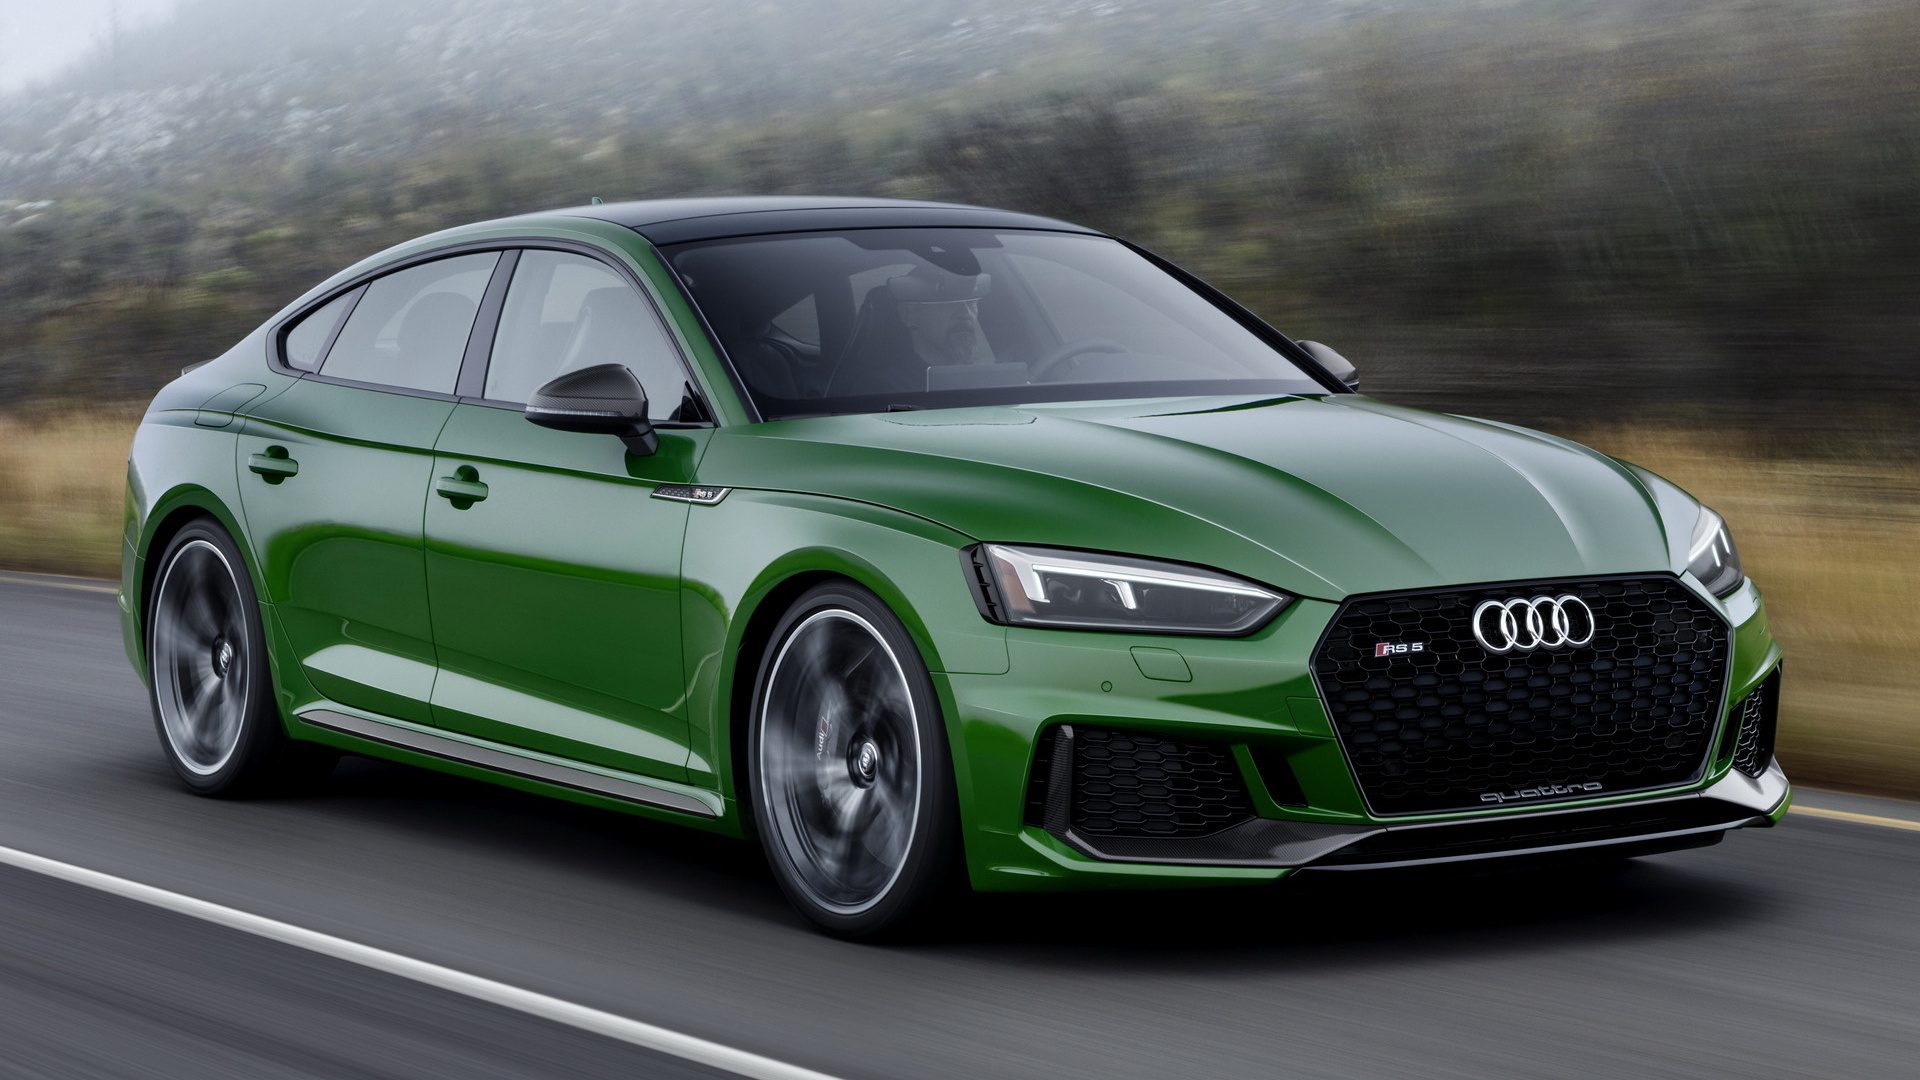 Land Rover Sport >> 2019 Audi RS 5 Sportback (US) - Wallpapers and HD Images | Car Pixel